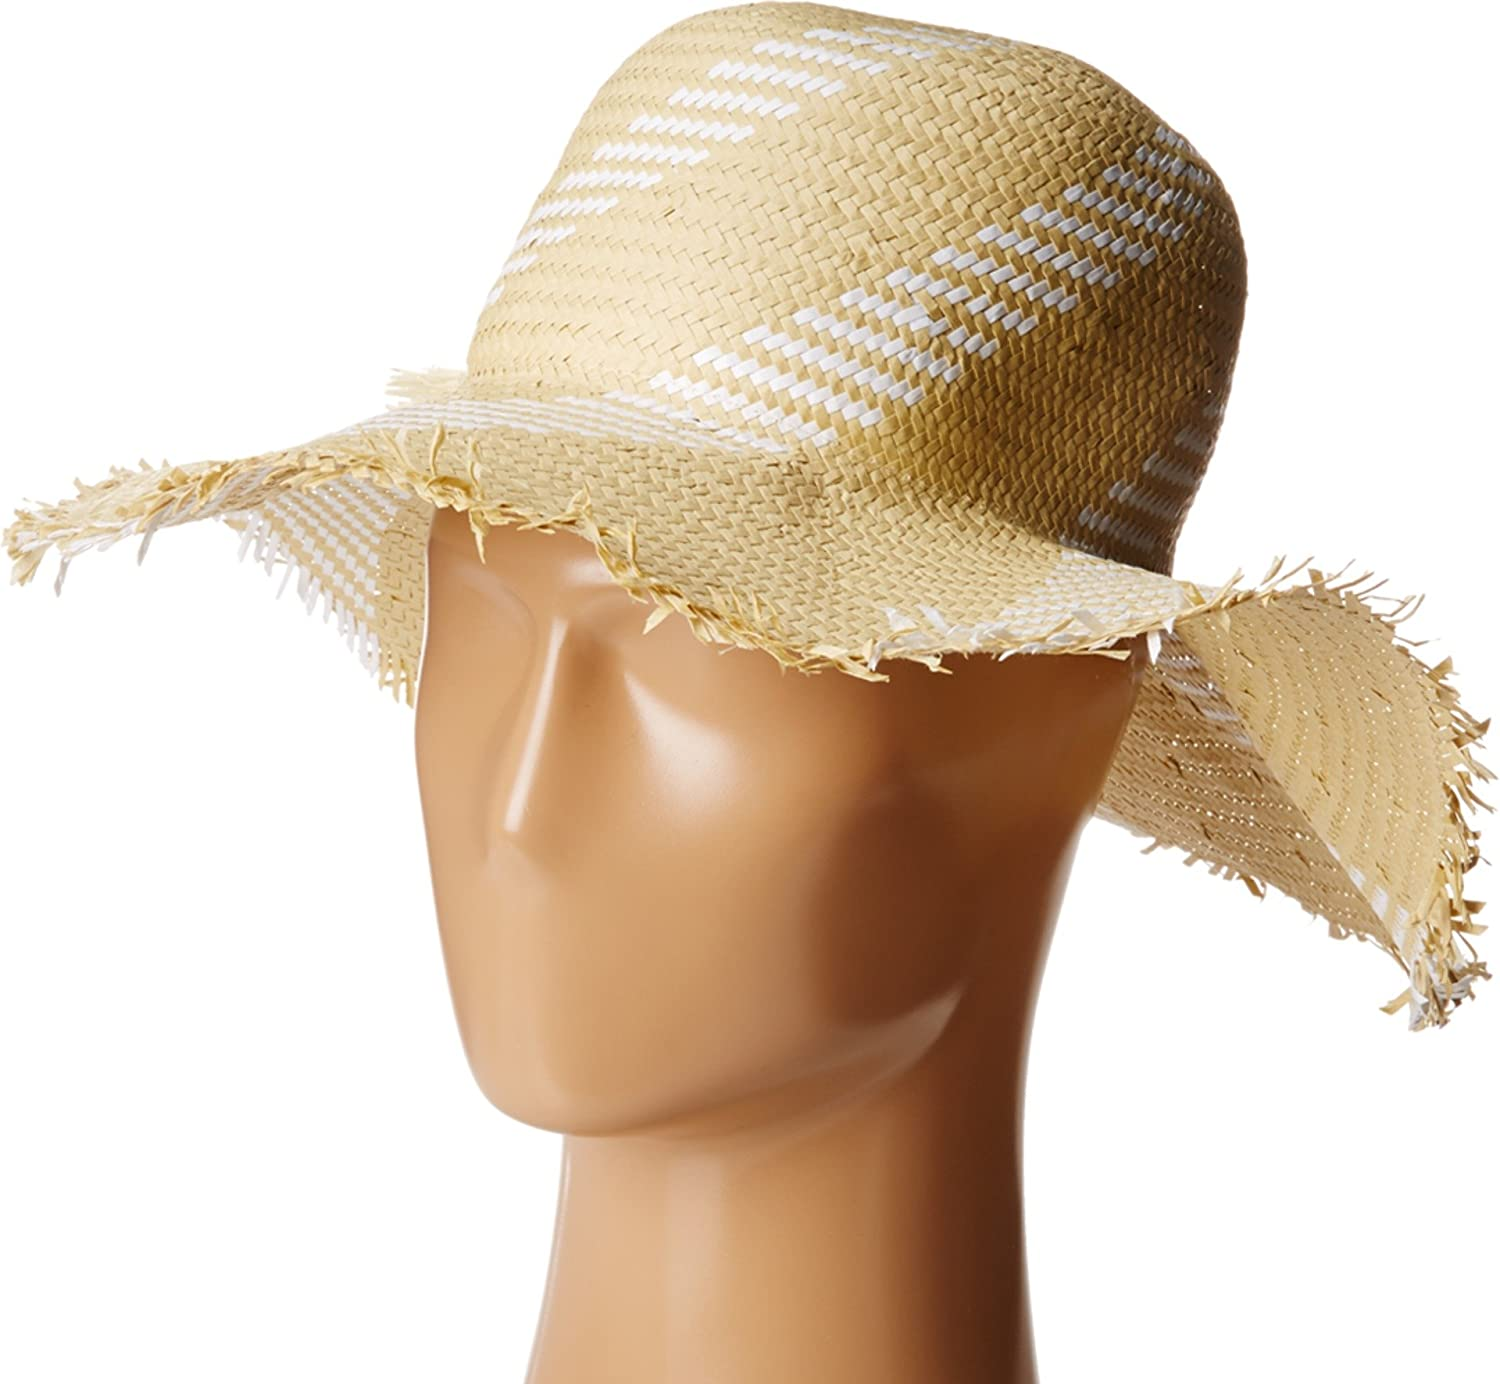 BCBGMAXAZRIA Women's Pom Floppy Hat White One Size BCBGMAXAZRIA Women' s Accessories HB101504